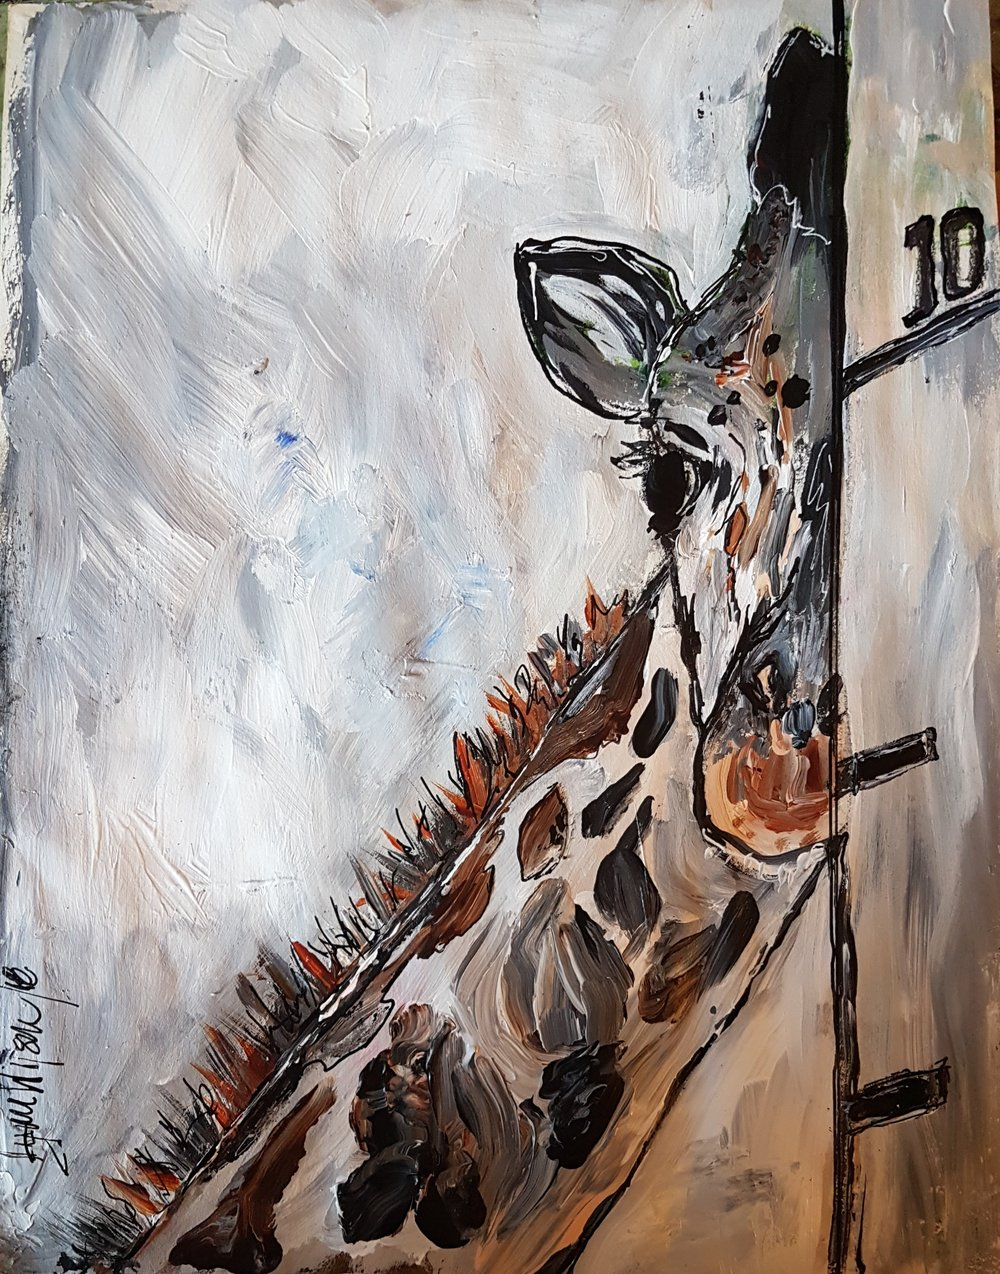 Fondas Animal Challenge Giraffe Painting June 10 2018 .jpg